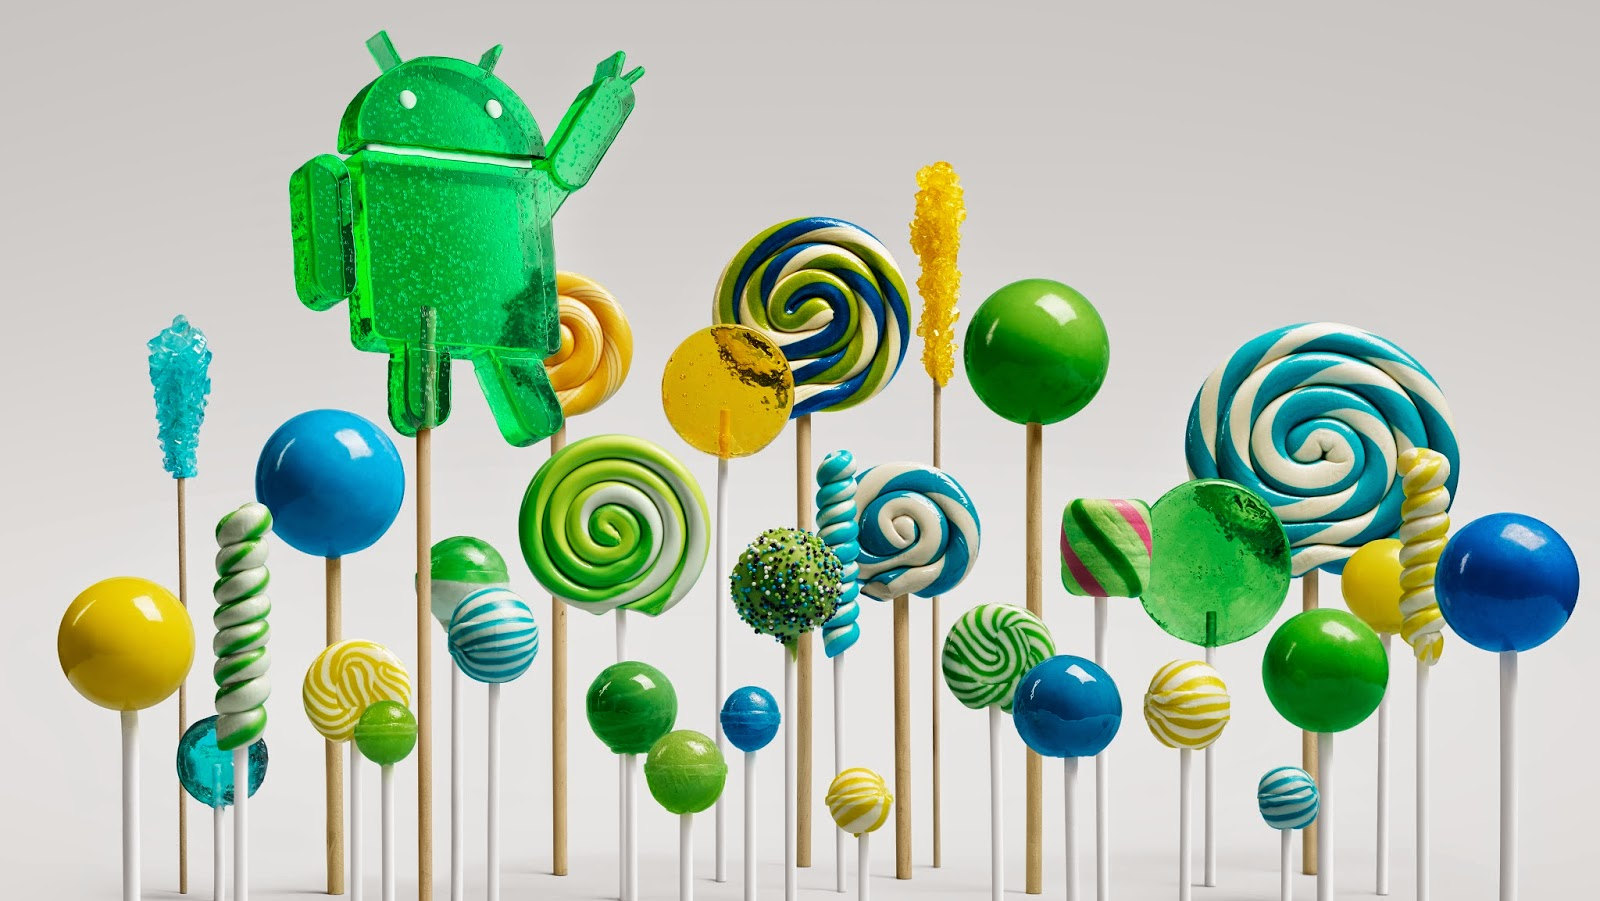 LG G2 and G3 Confirmed to Receive Android L 'Lollipop' OS Upgrade, Along With Google, Motorola, Sony and HTC Devices